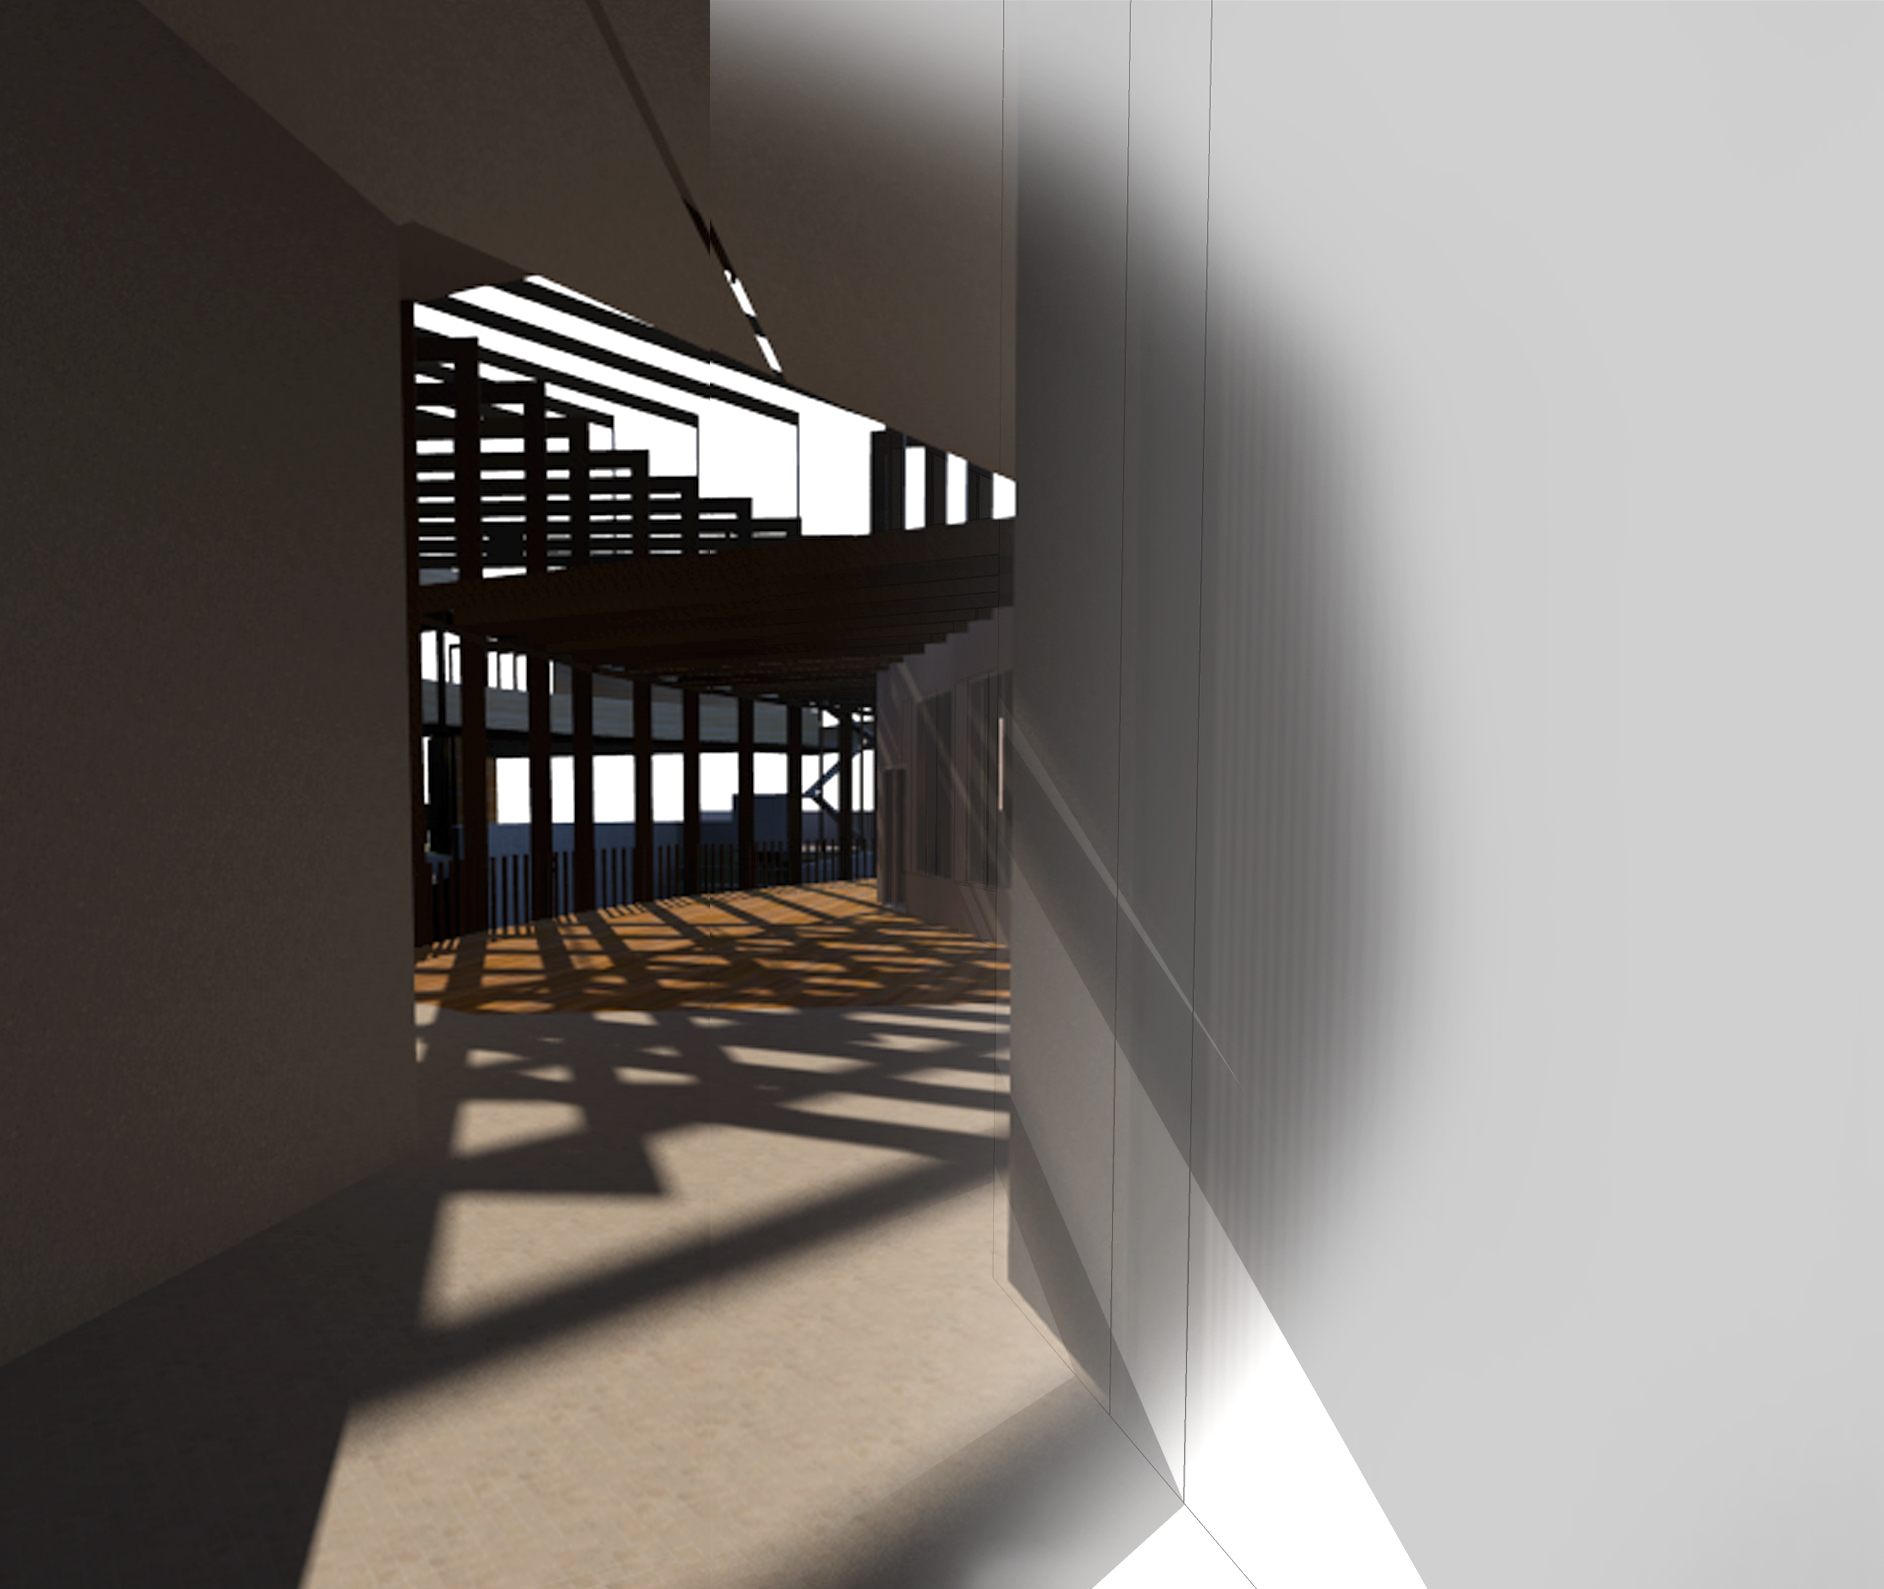 entrance hallway - hybridedit.jpg